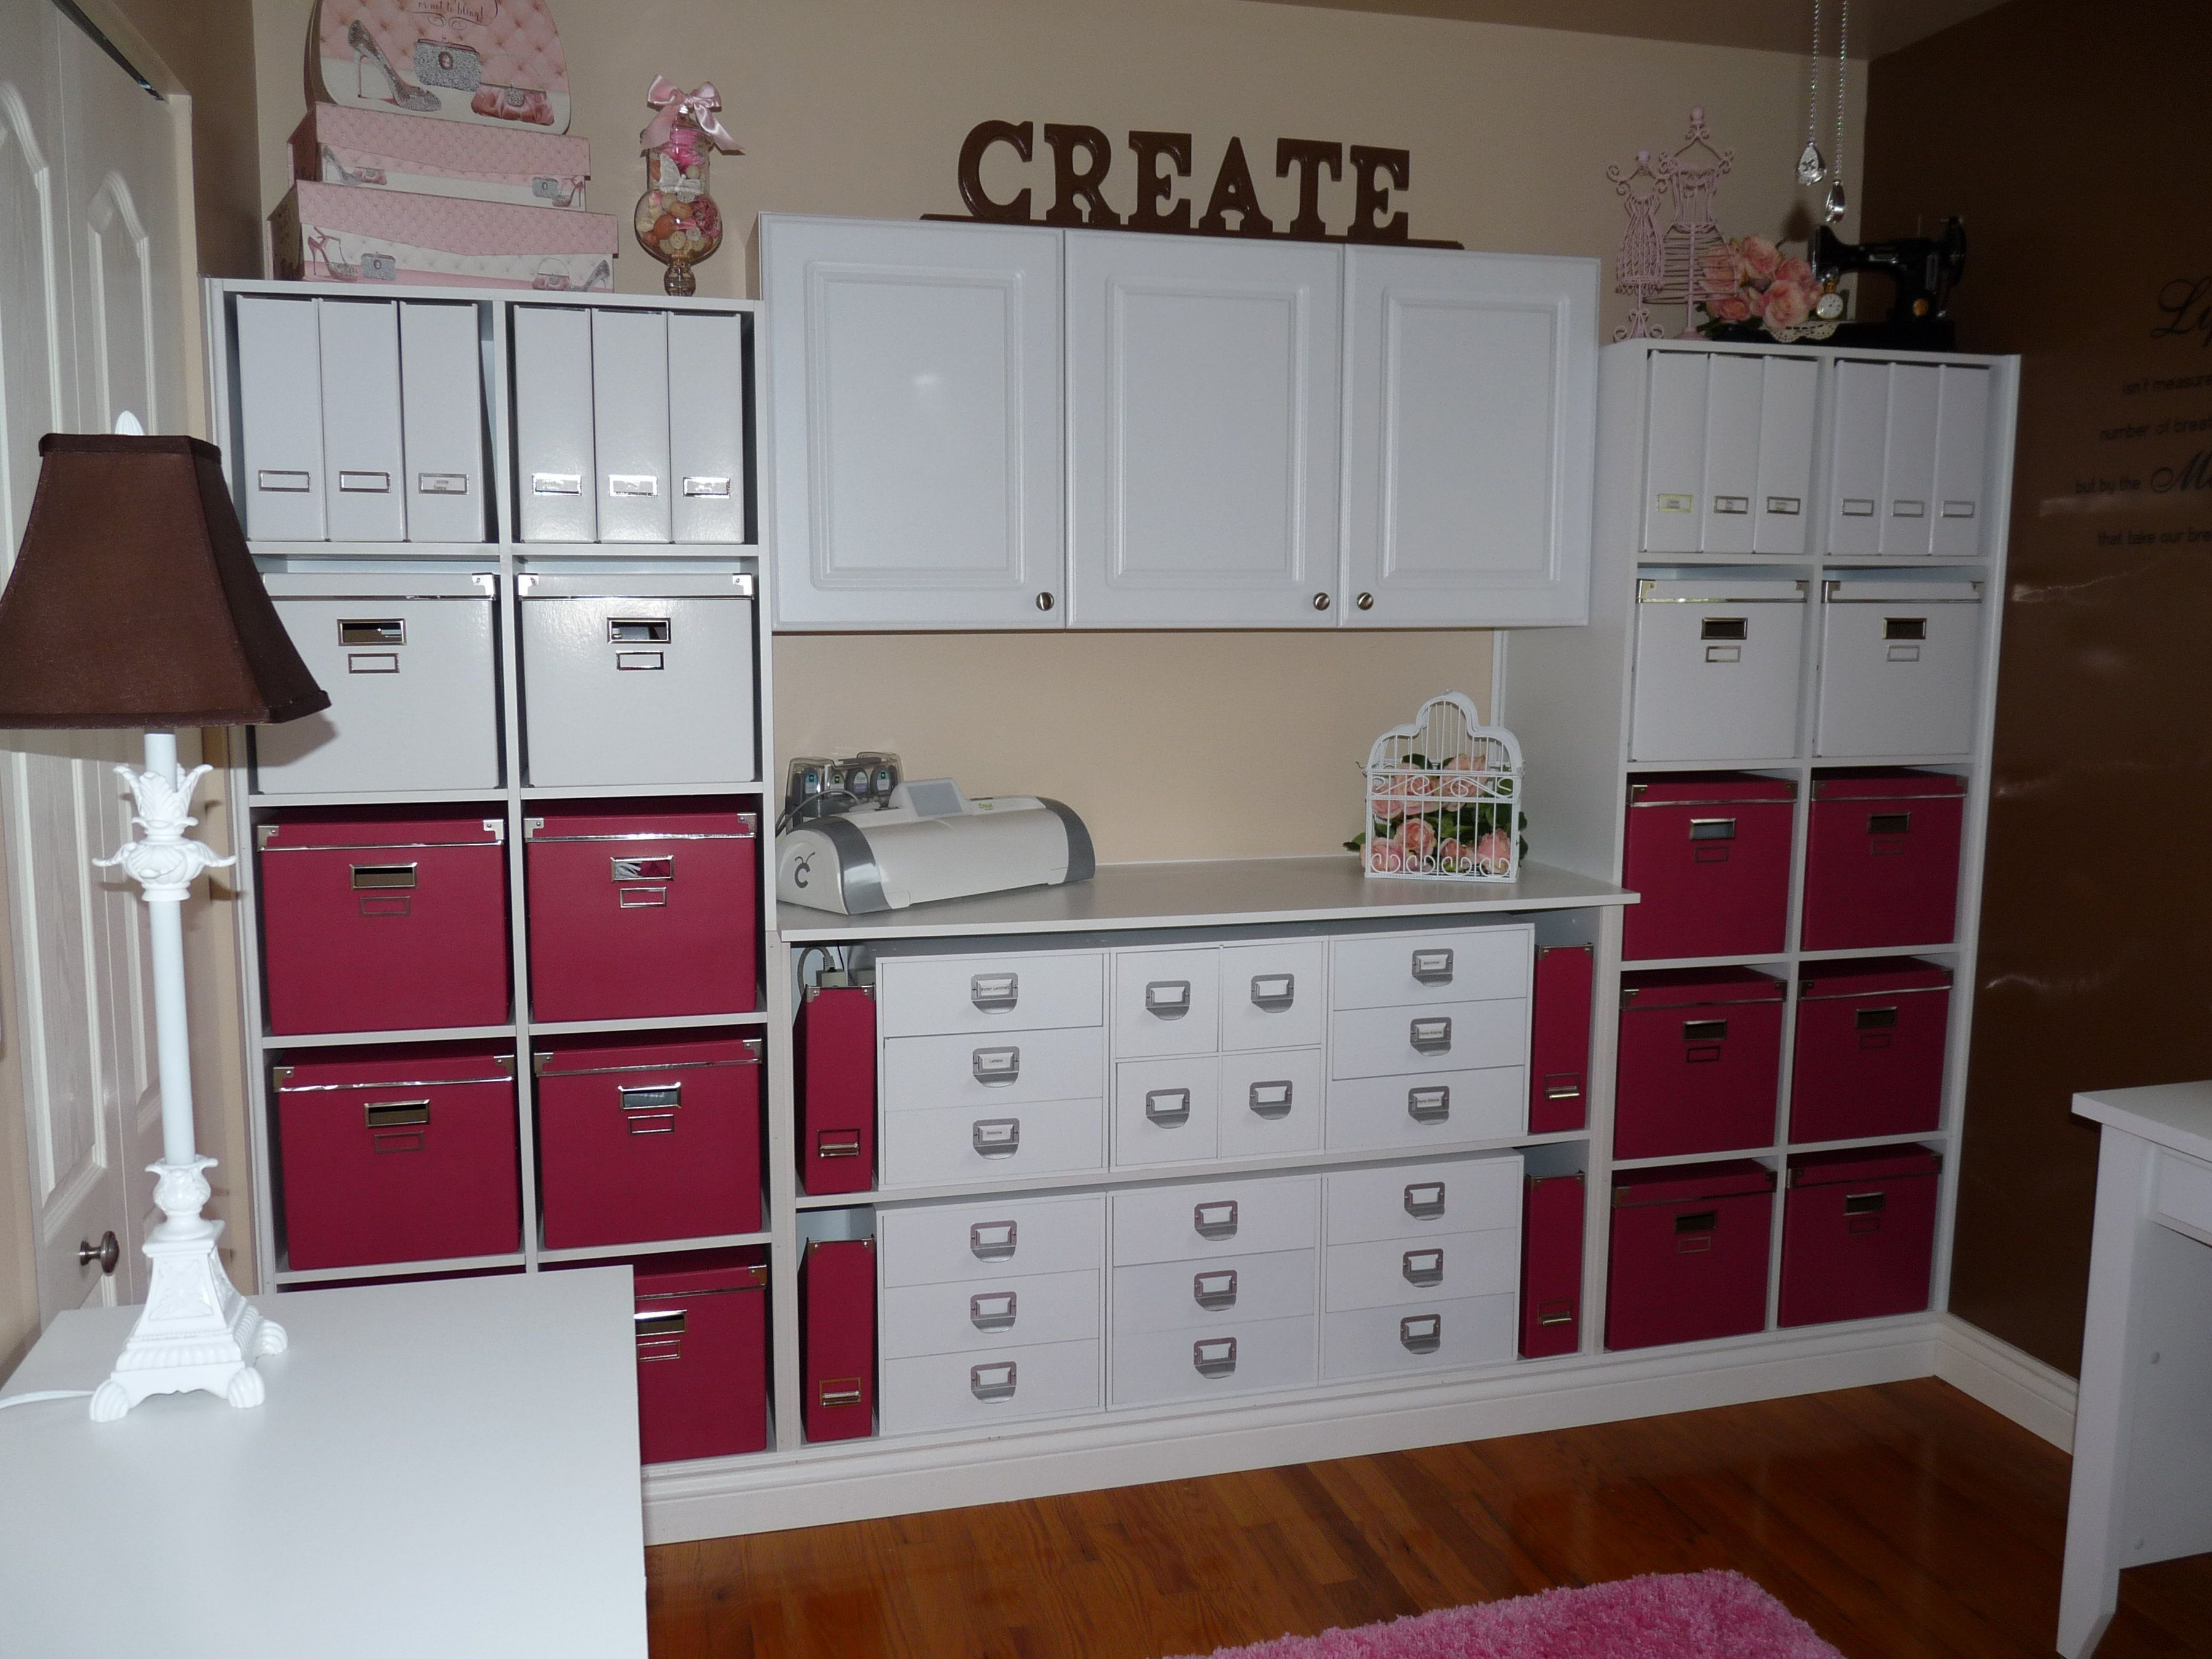 Great Wall Of Storage Using Ikea Red Boxes. Storage Units